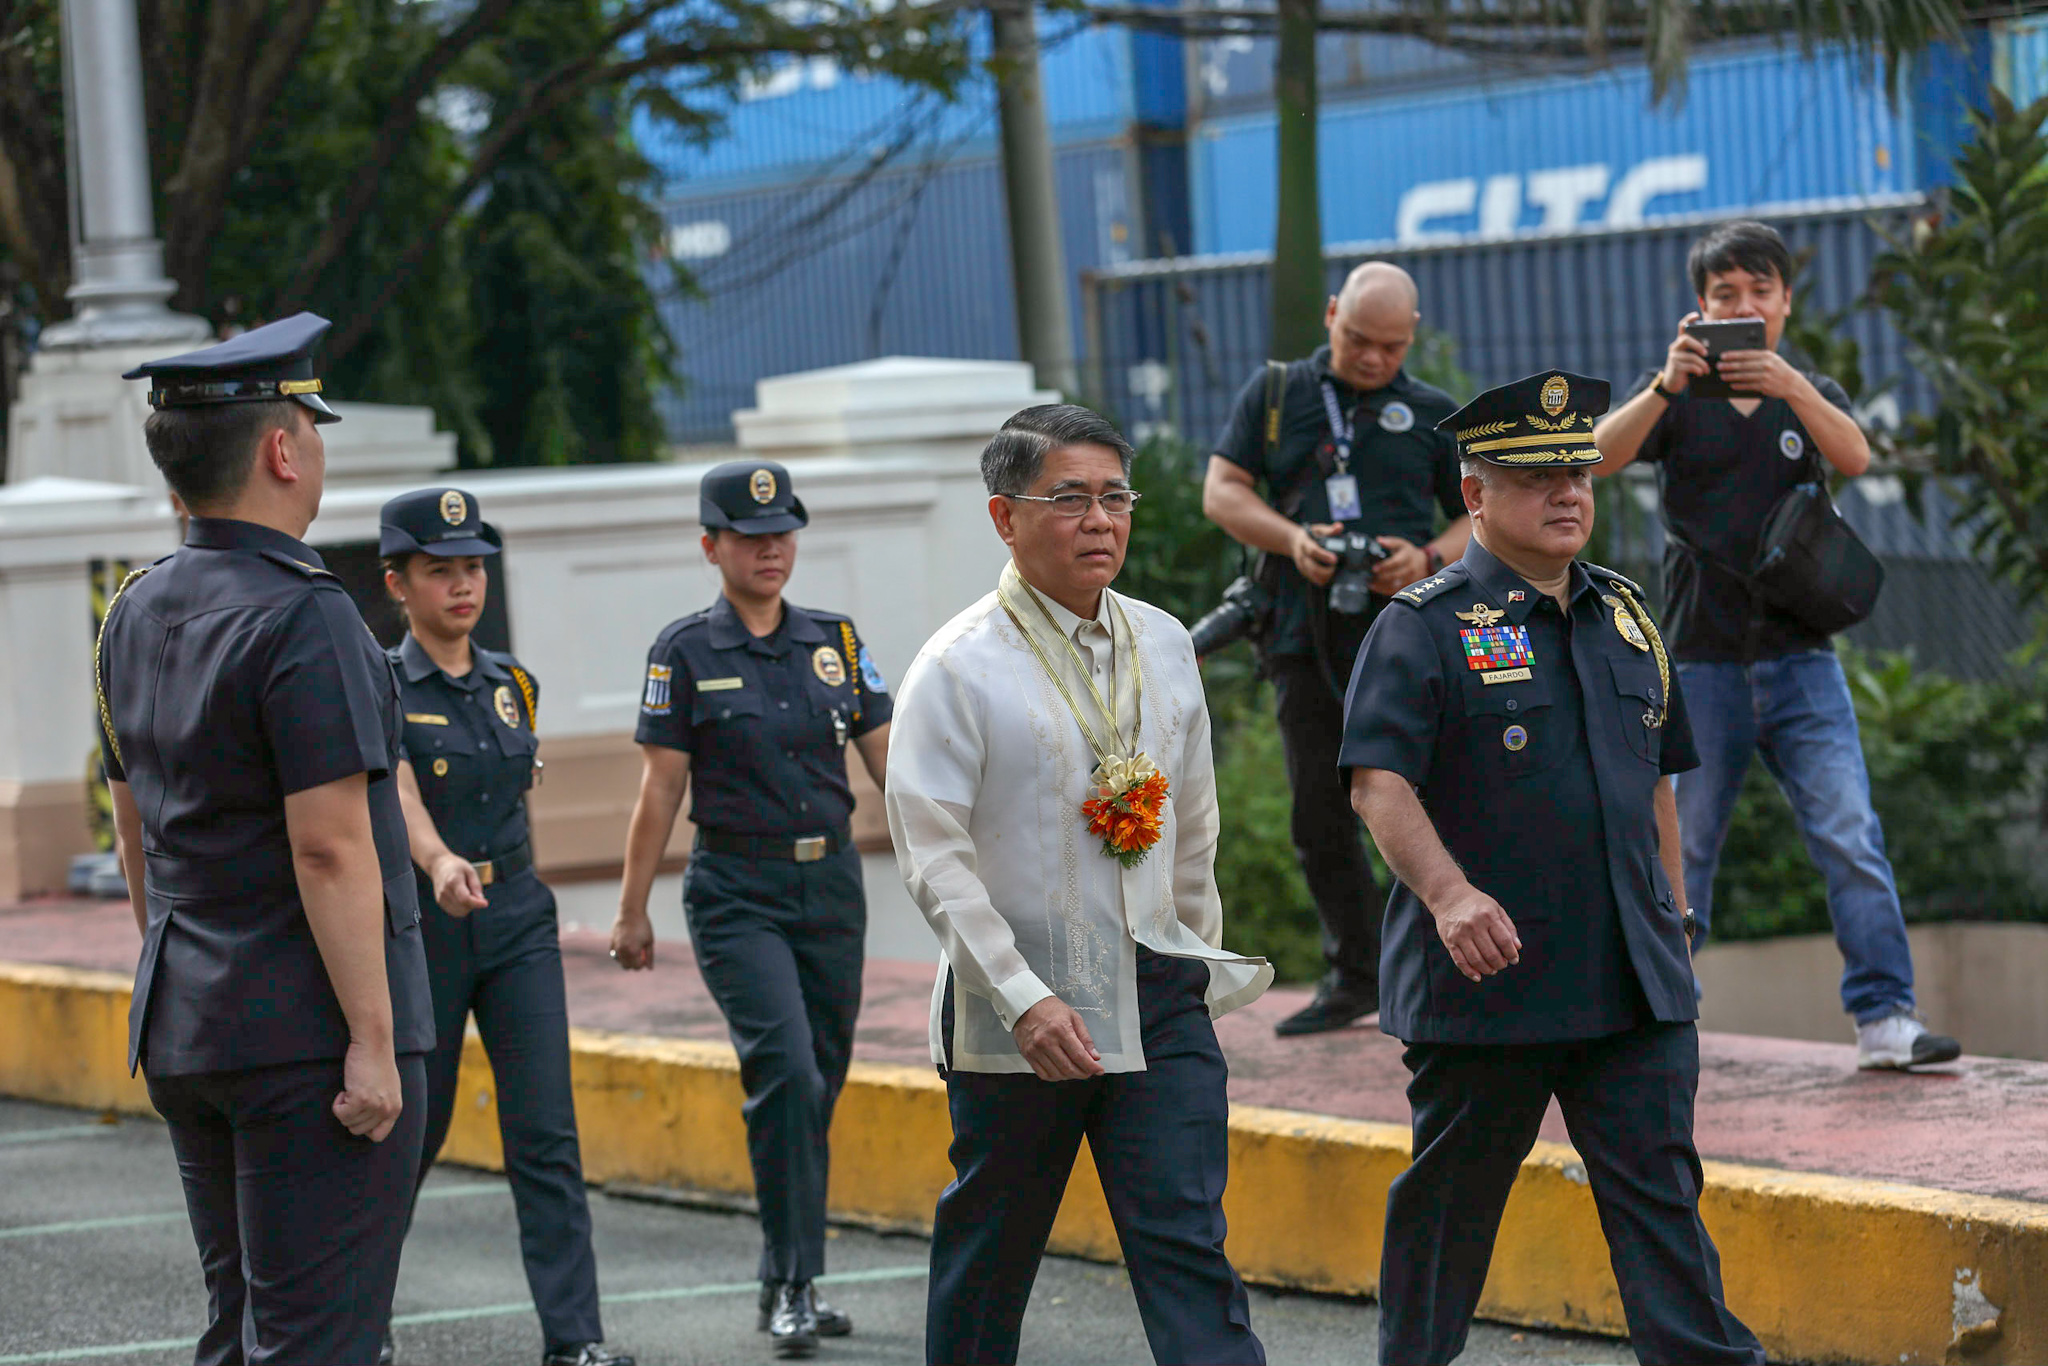 SHAKE-UP. Former military chief Rey Leonardo Guerrero is installed as new customs chief. File photo by Inoue Jaena/Rappler